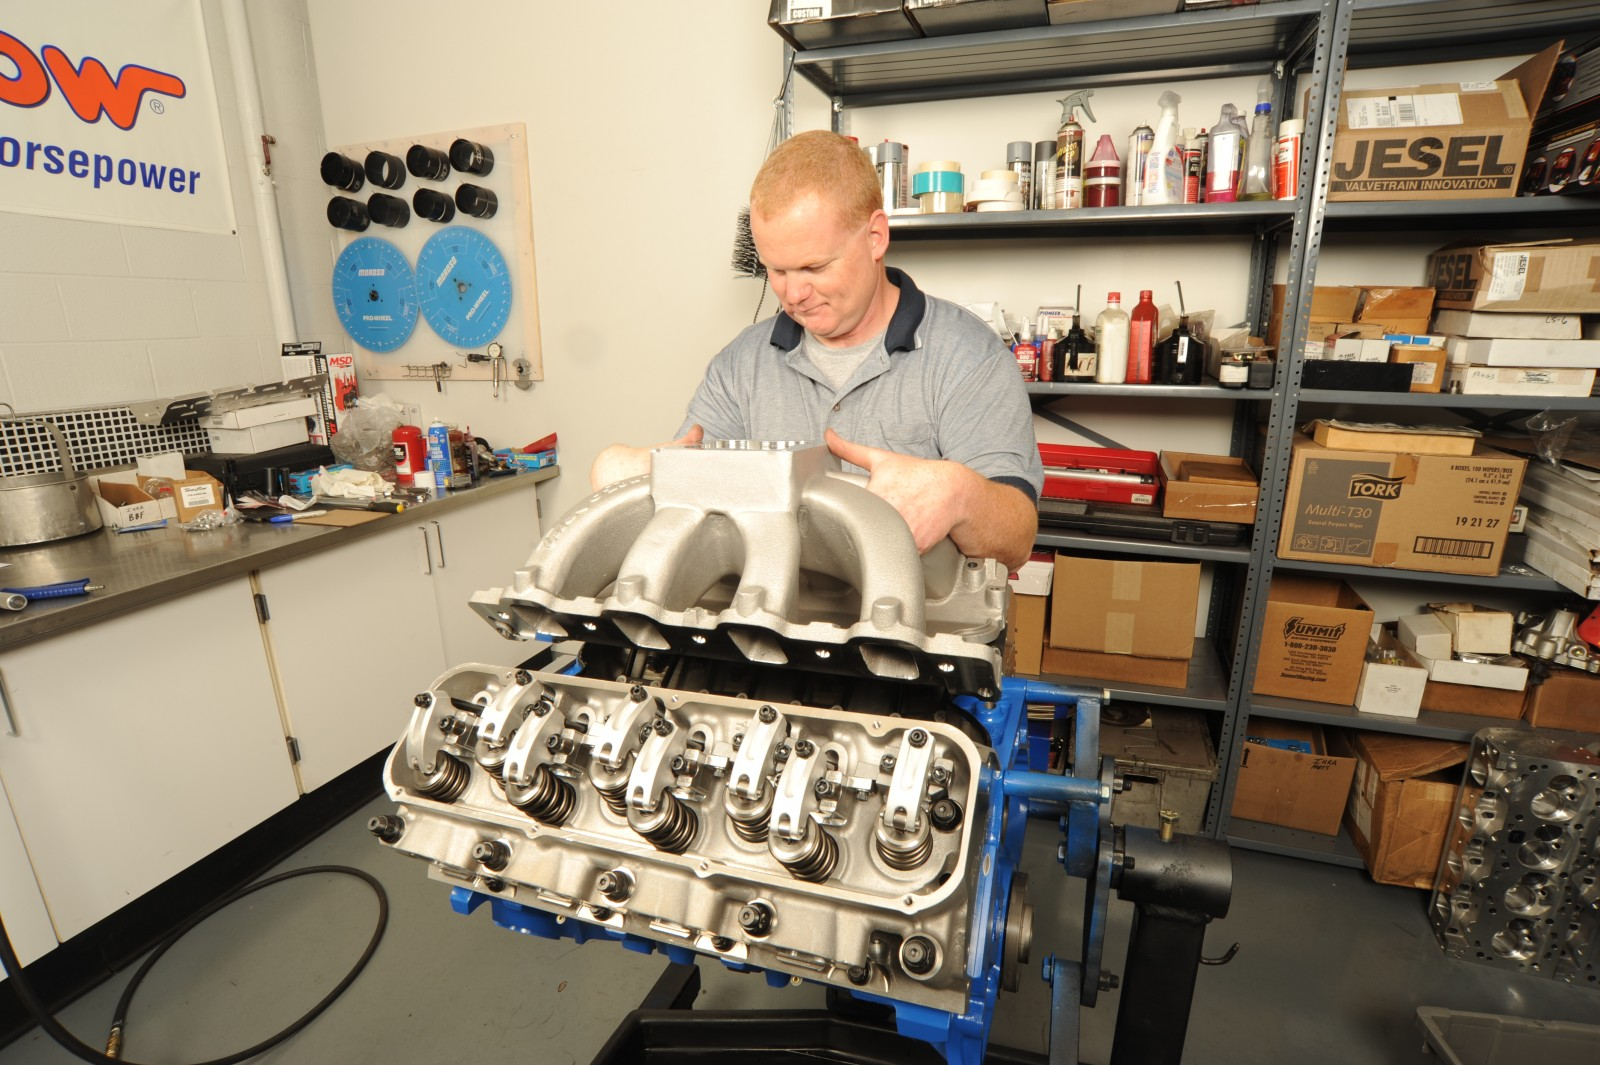 Big Ford Horsepower (Part 2): Installing the Top End on